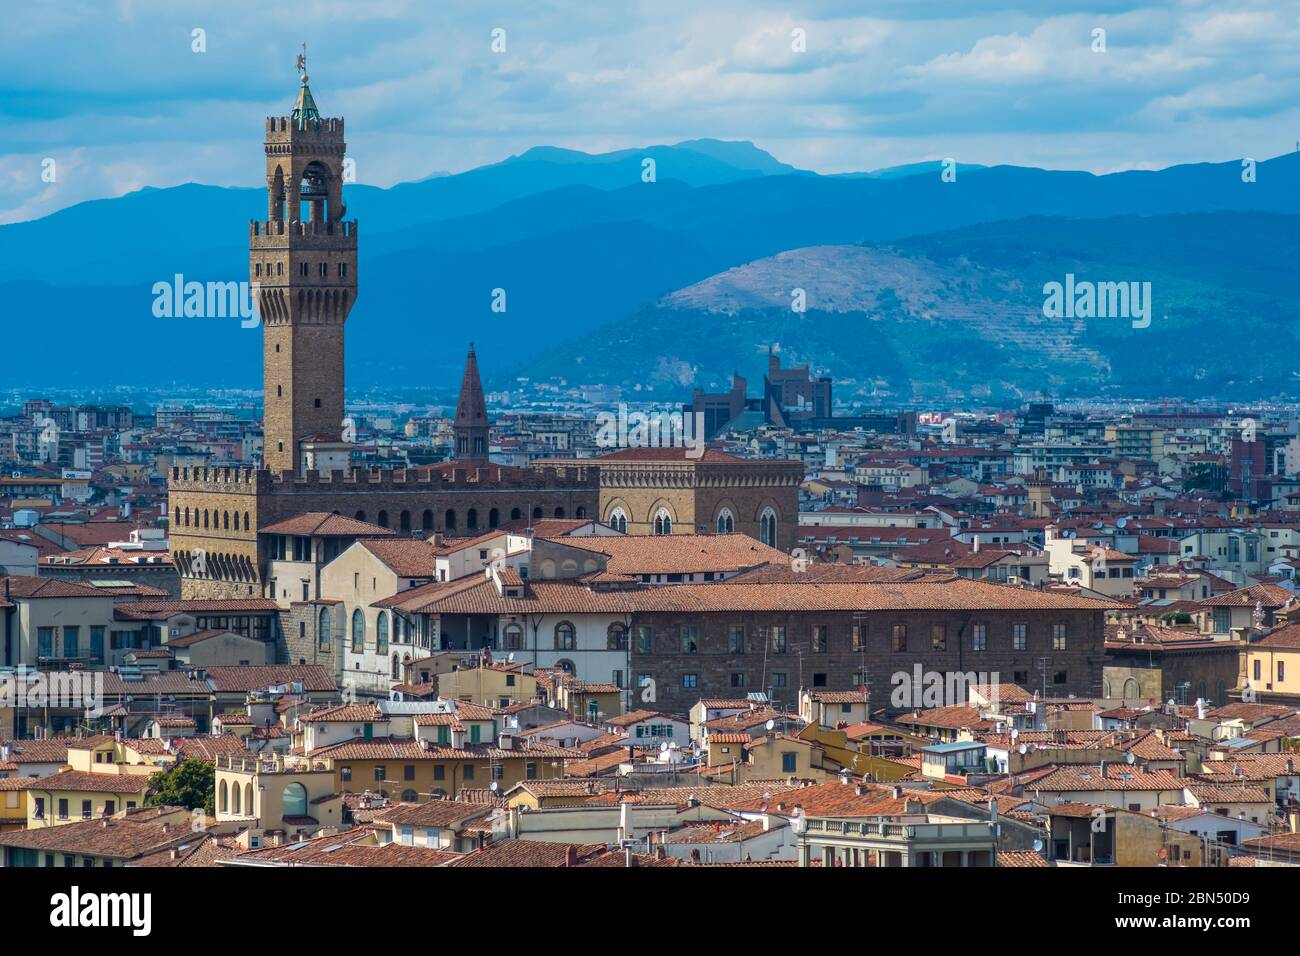 Florence, Italy - August 16, 2019: View of Florence Skyline with Palazzo Vecchio and landscape of Tuscany, Italy Stock Photo